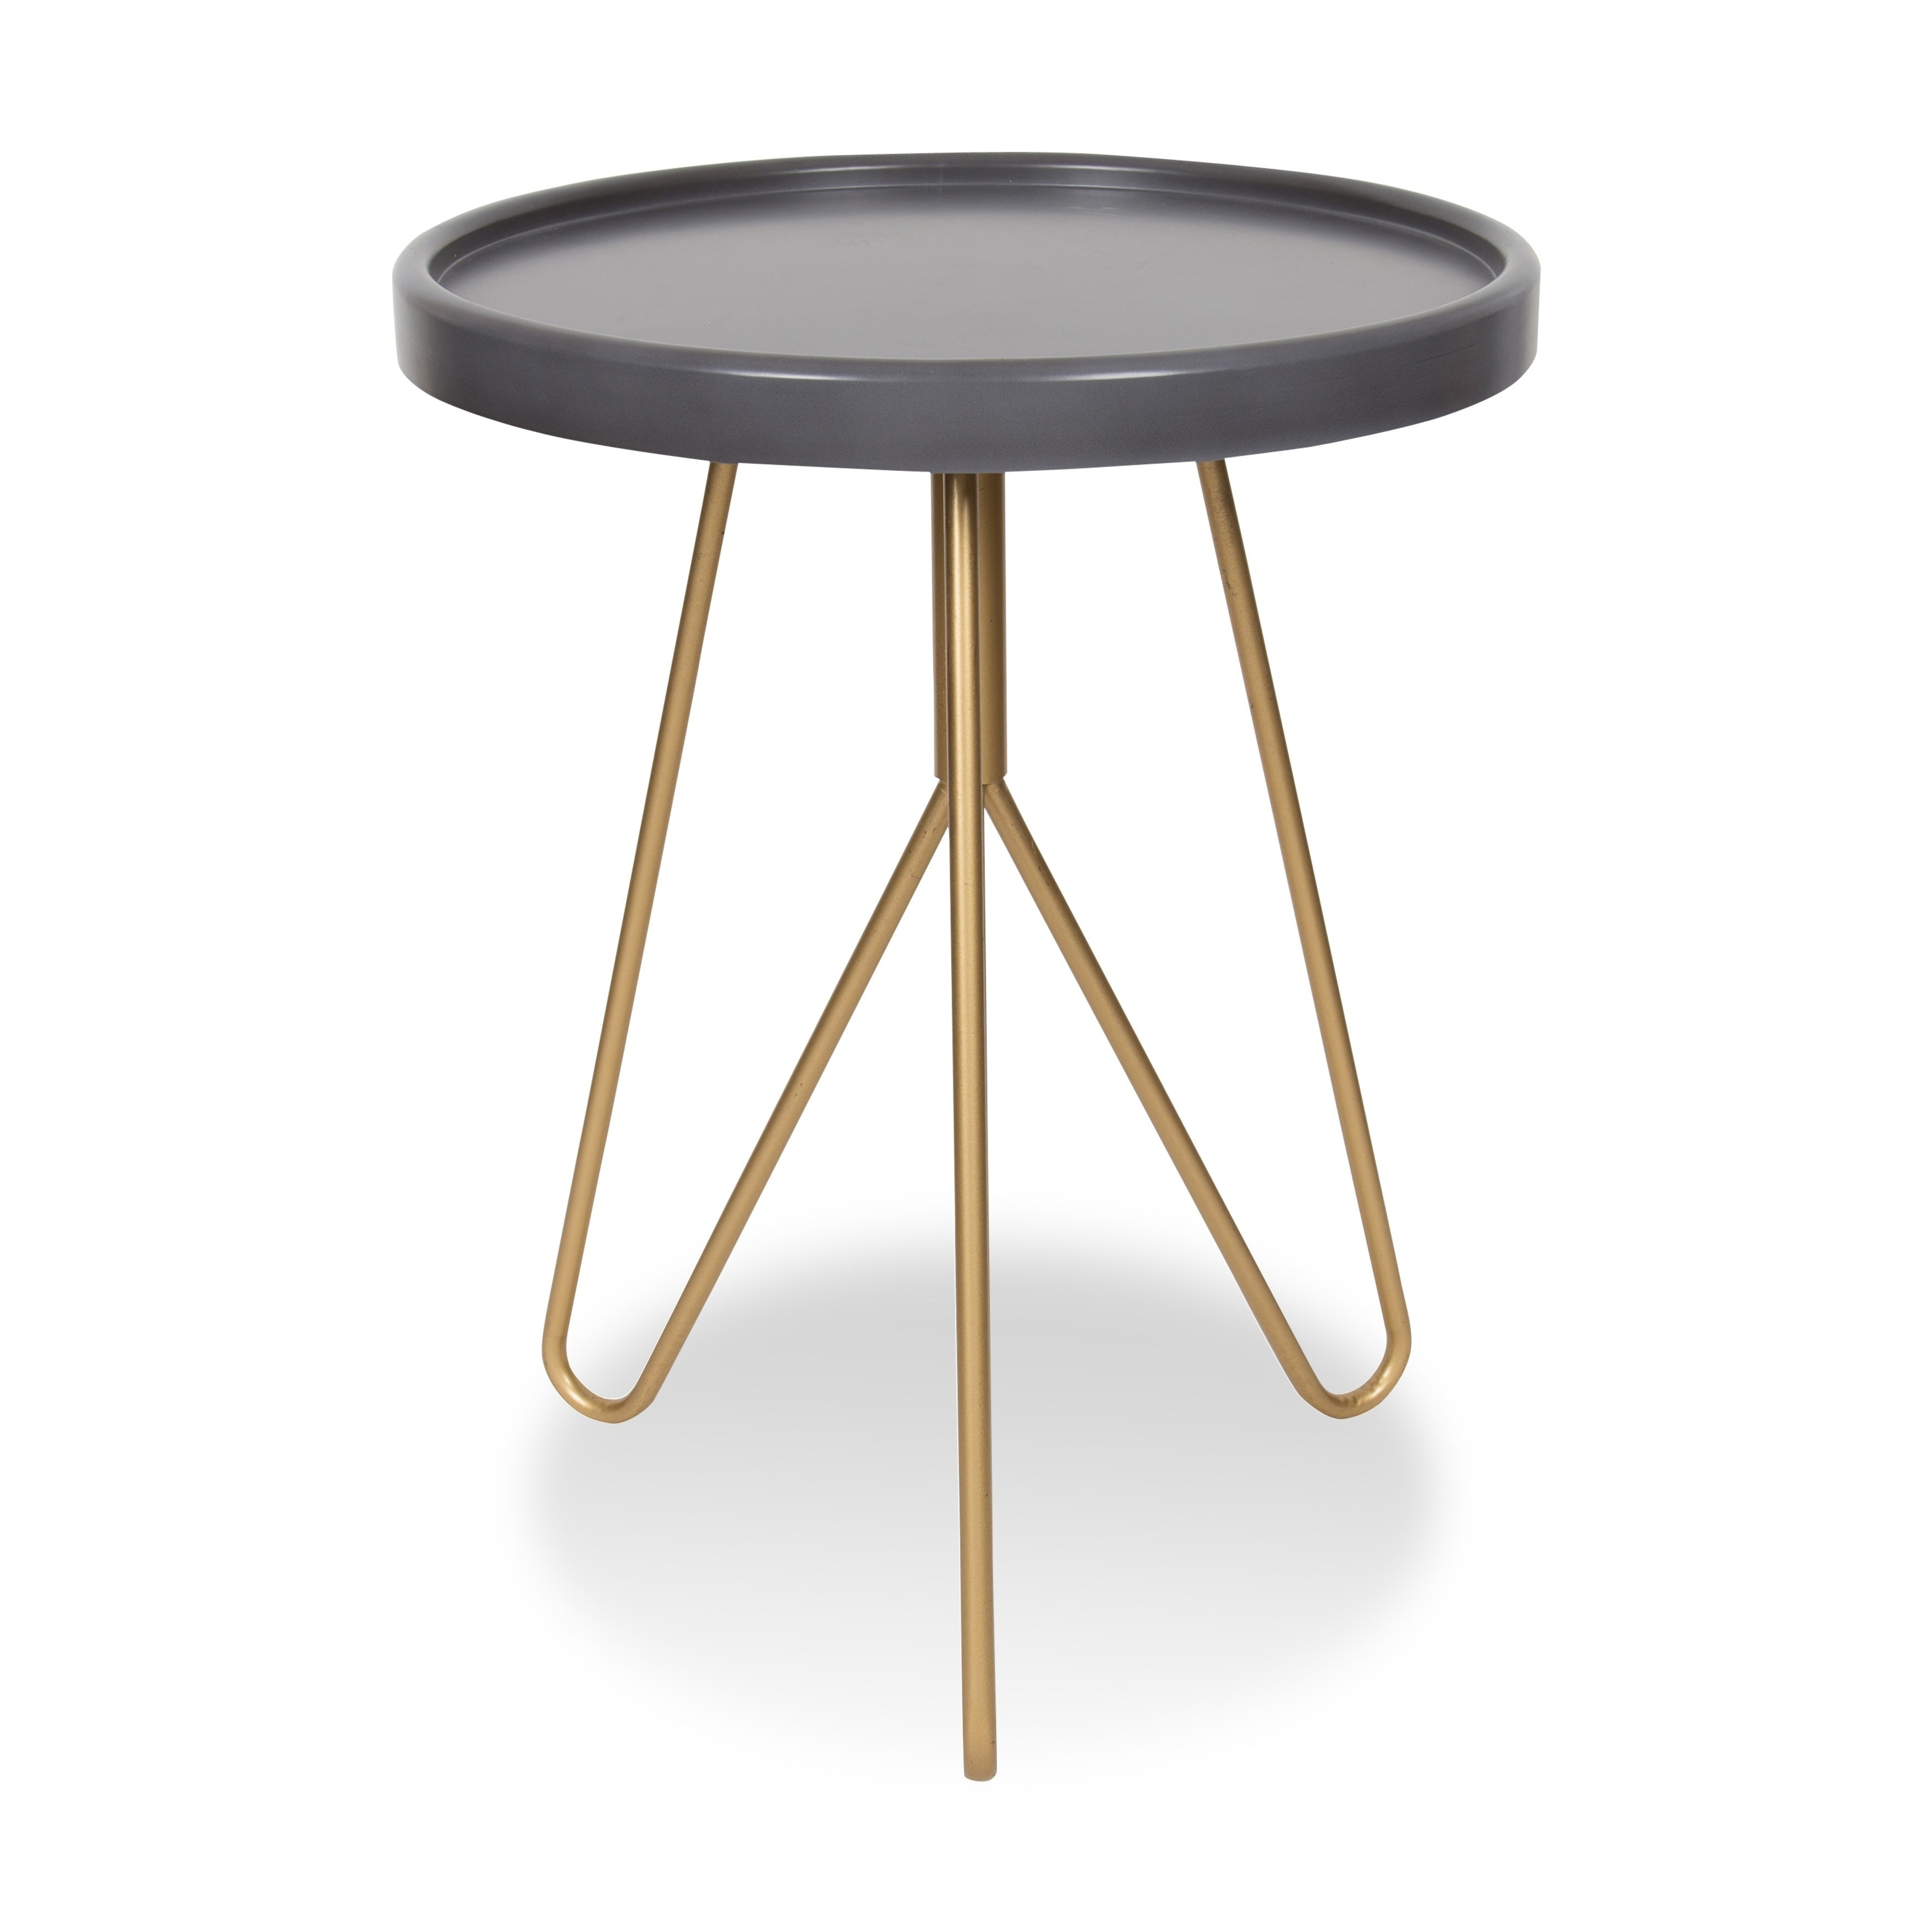 maxey inch round tall side table gray and gold outdoor accent free shipping today wooden patio with umbrella hole stein world multi drawer chest hand painted dress chrome coffee